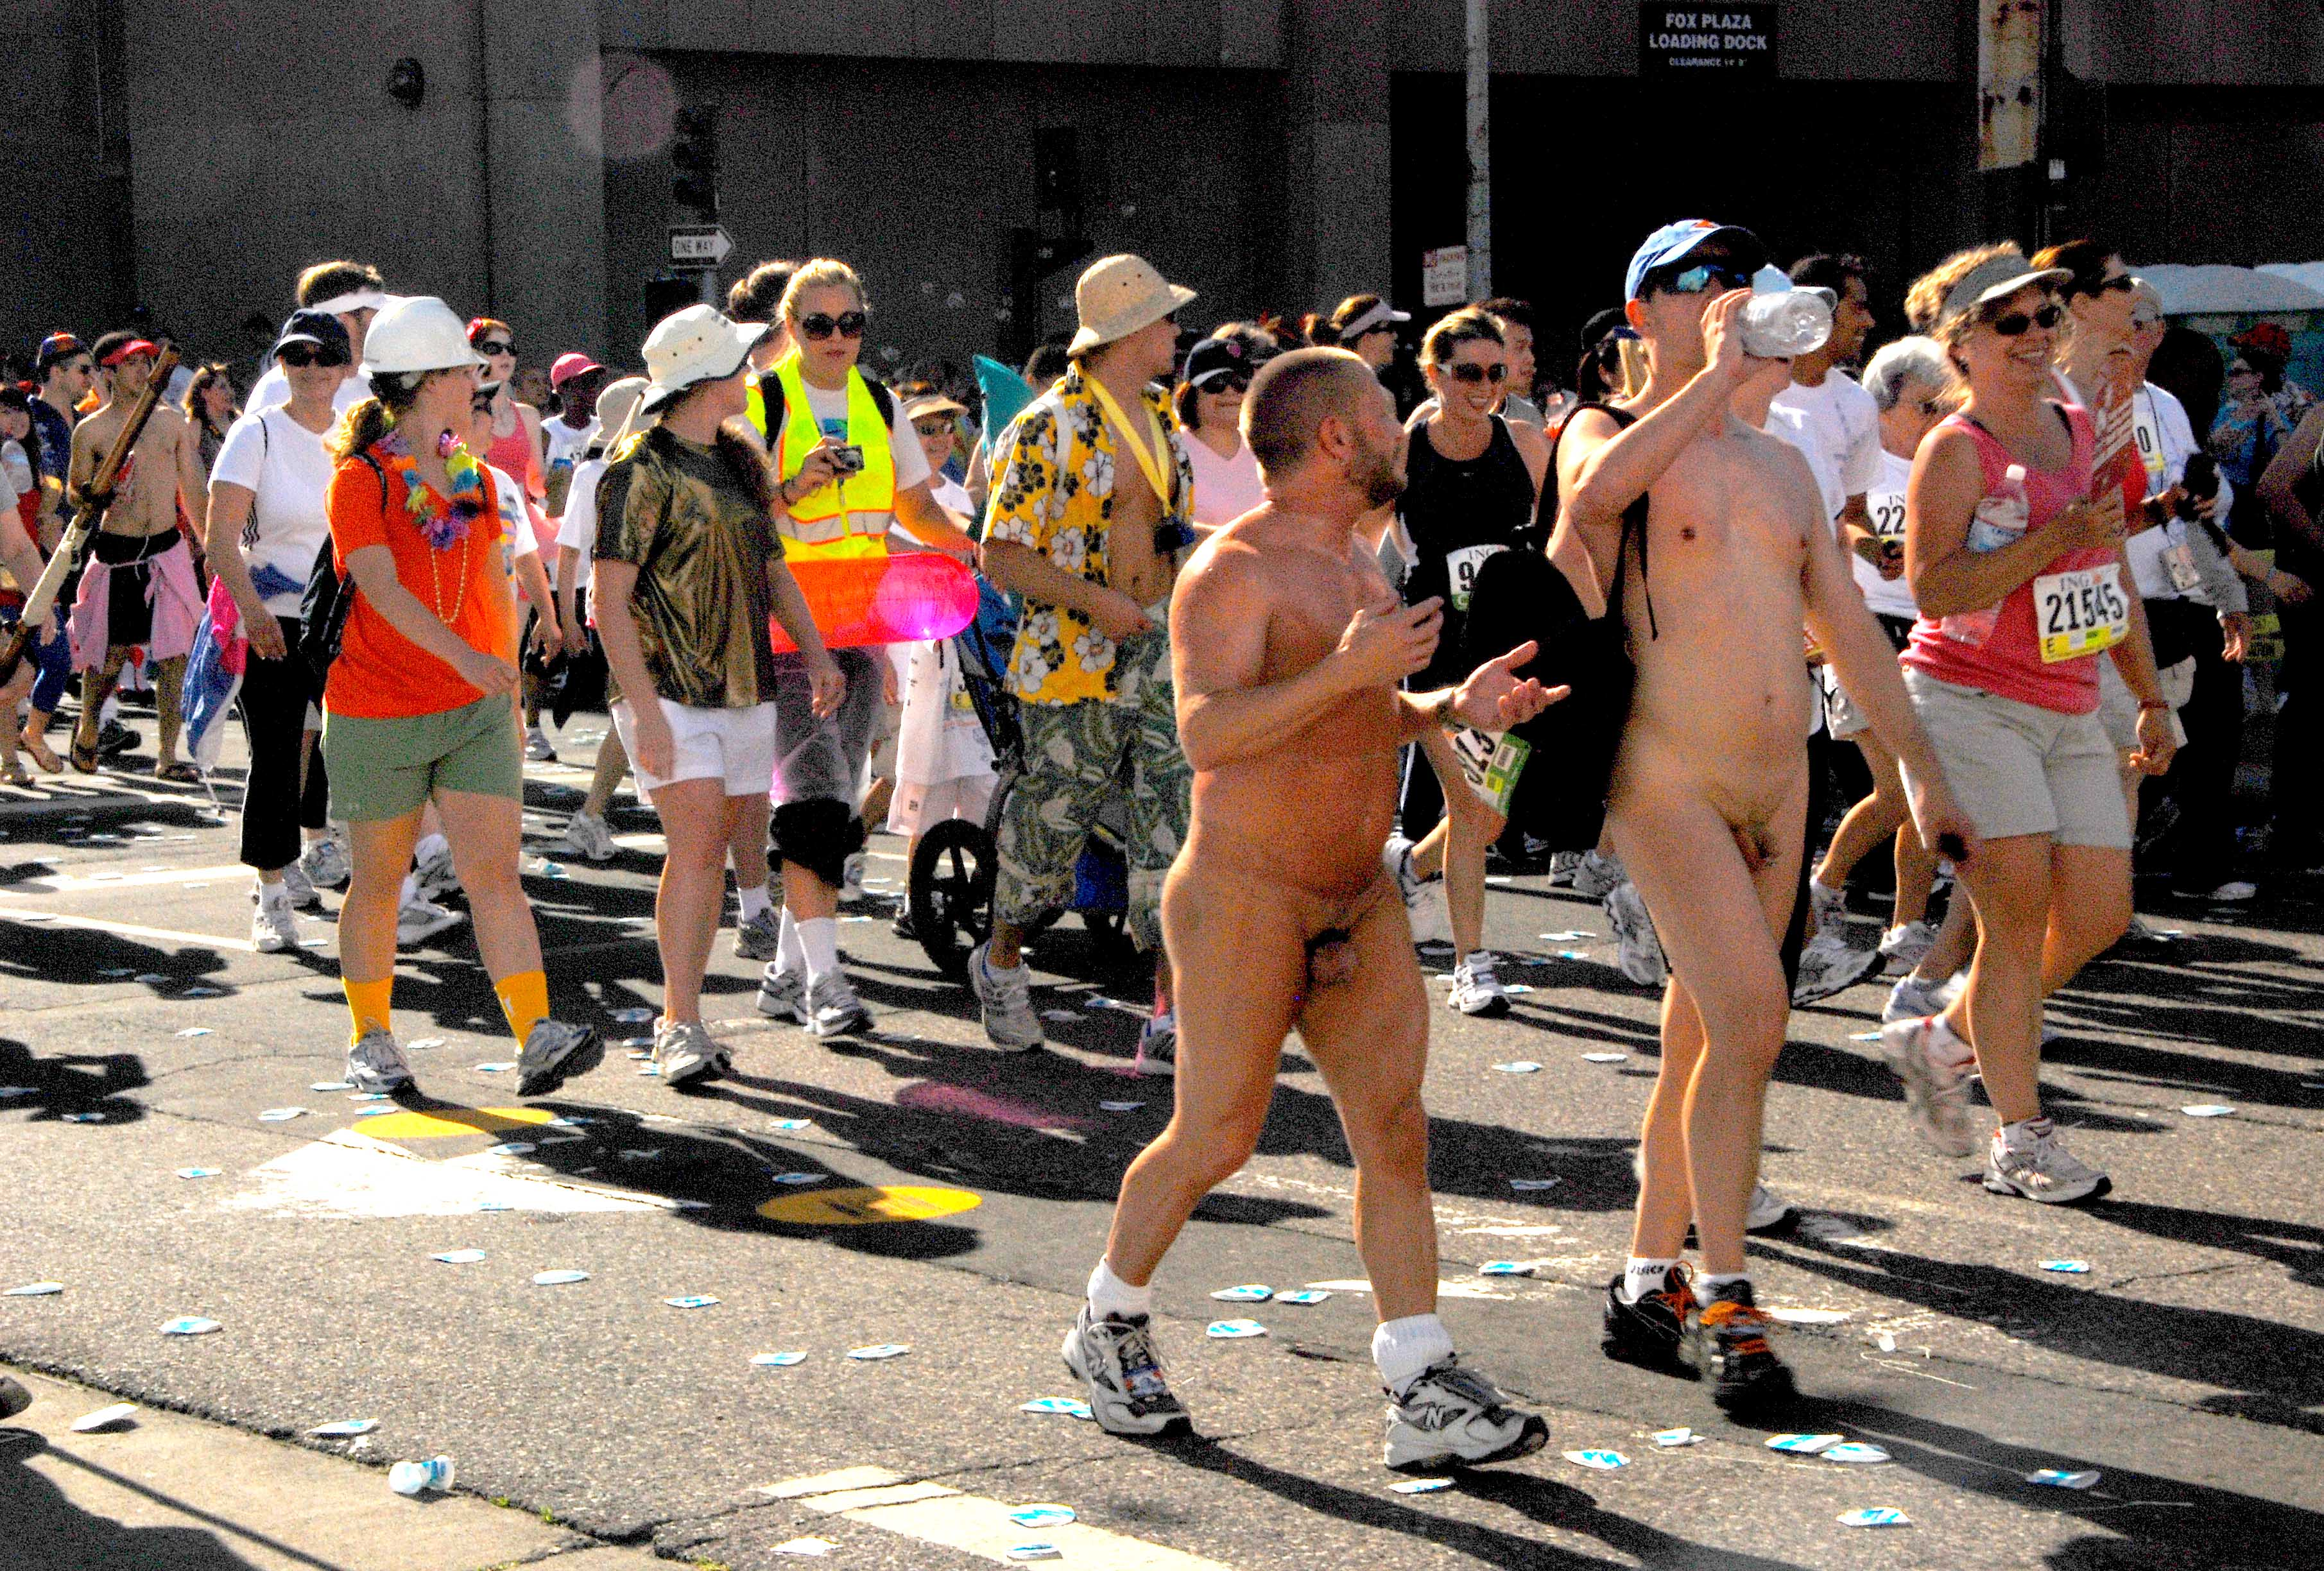 nakedness abounds at Bay to Breakers smaller